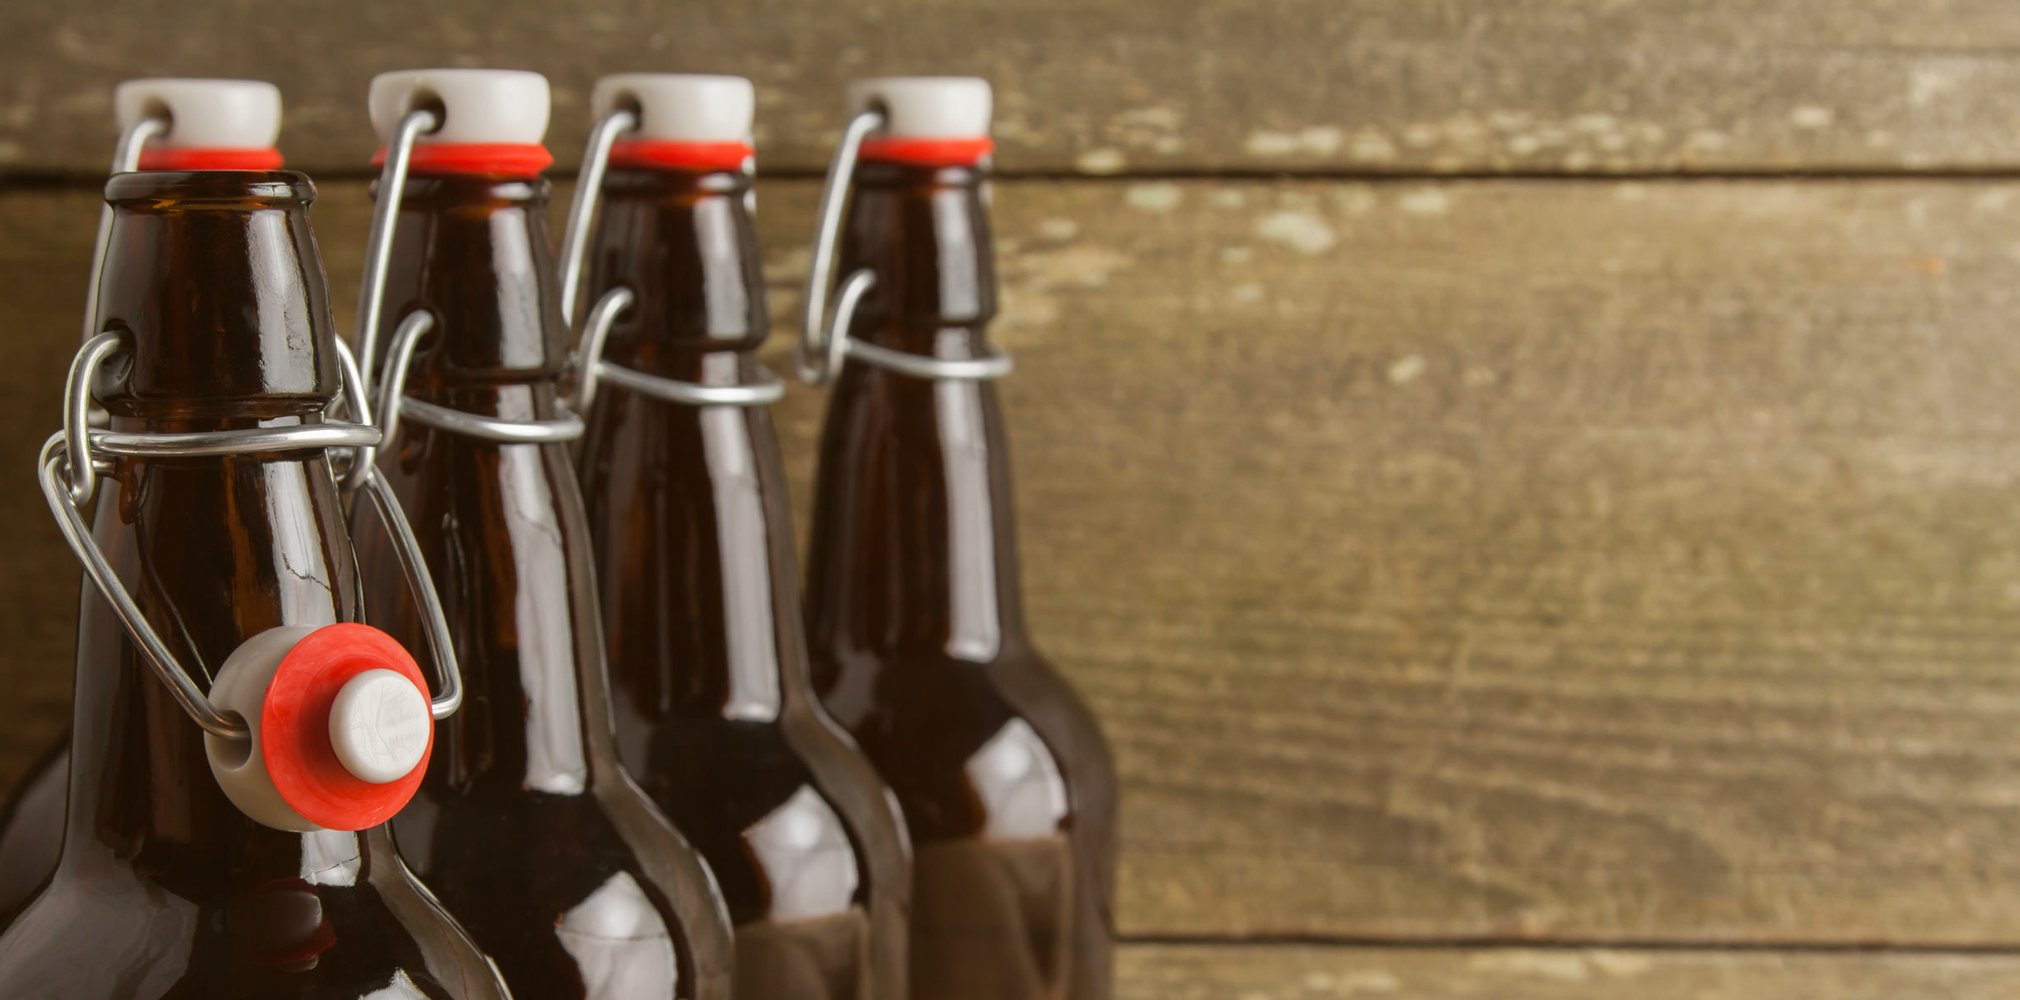 Homebrew Kits and Home Brewing Supplies